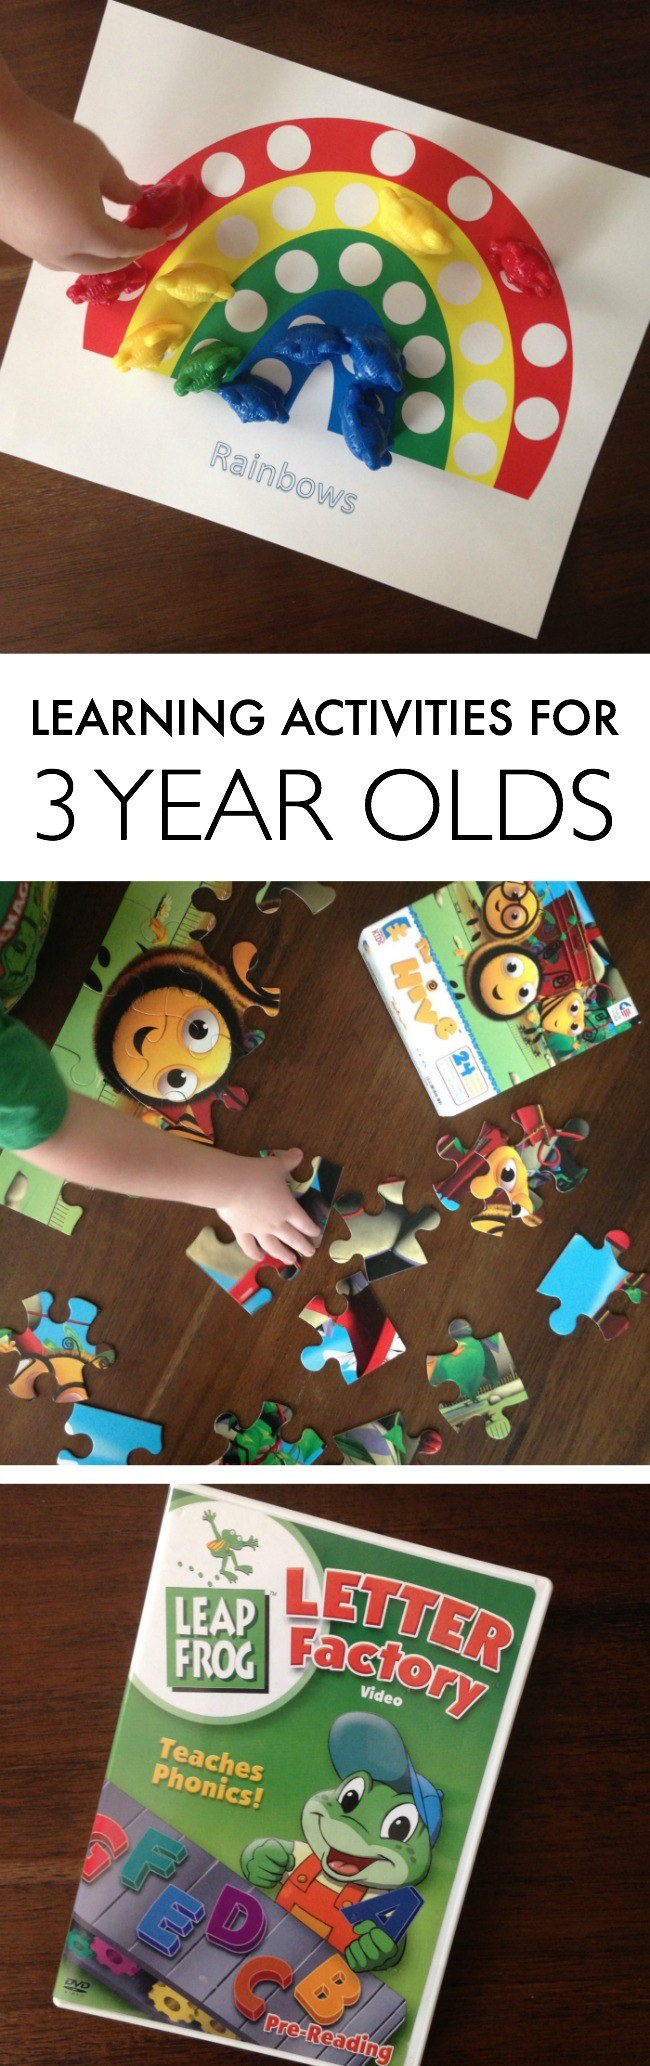 learning activities for 3 year olds